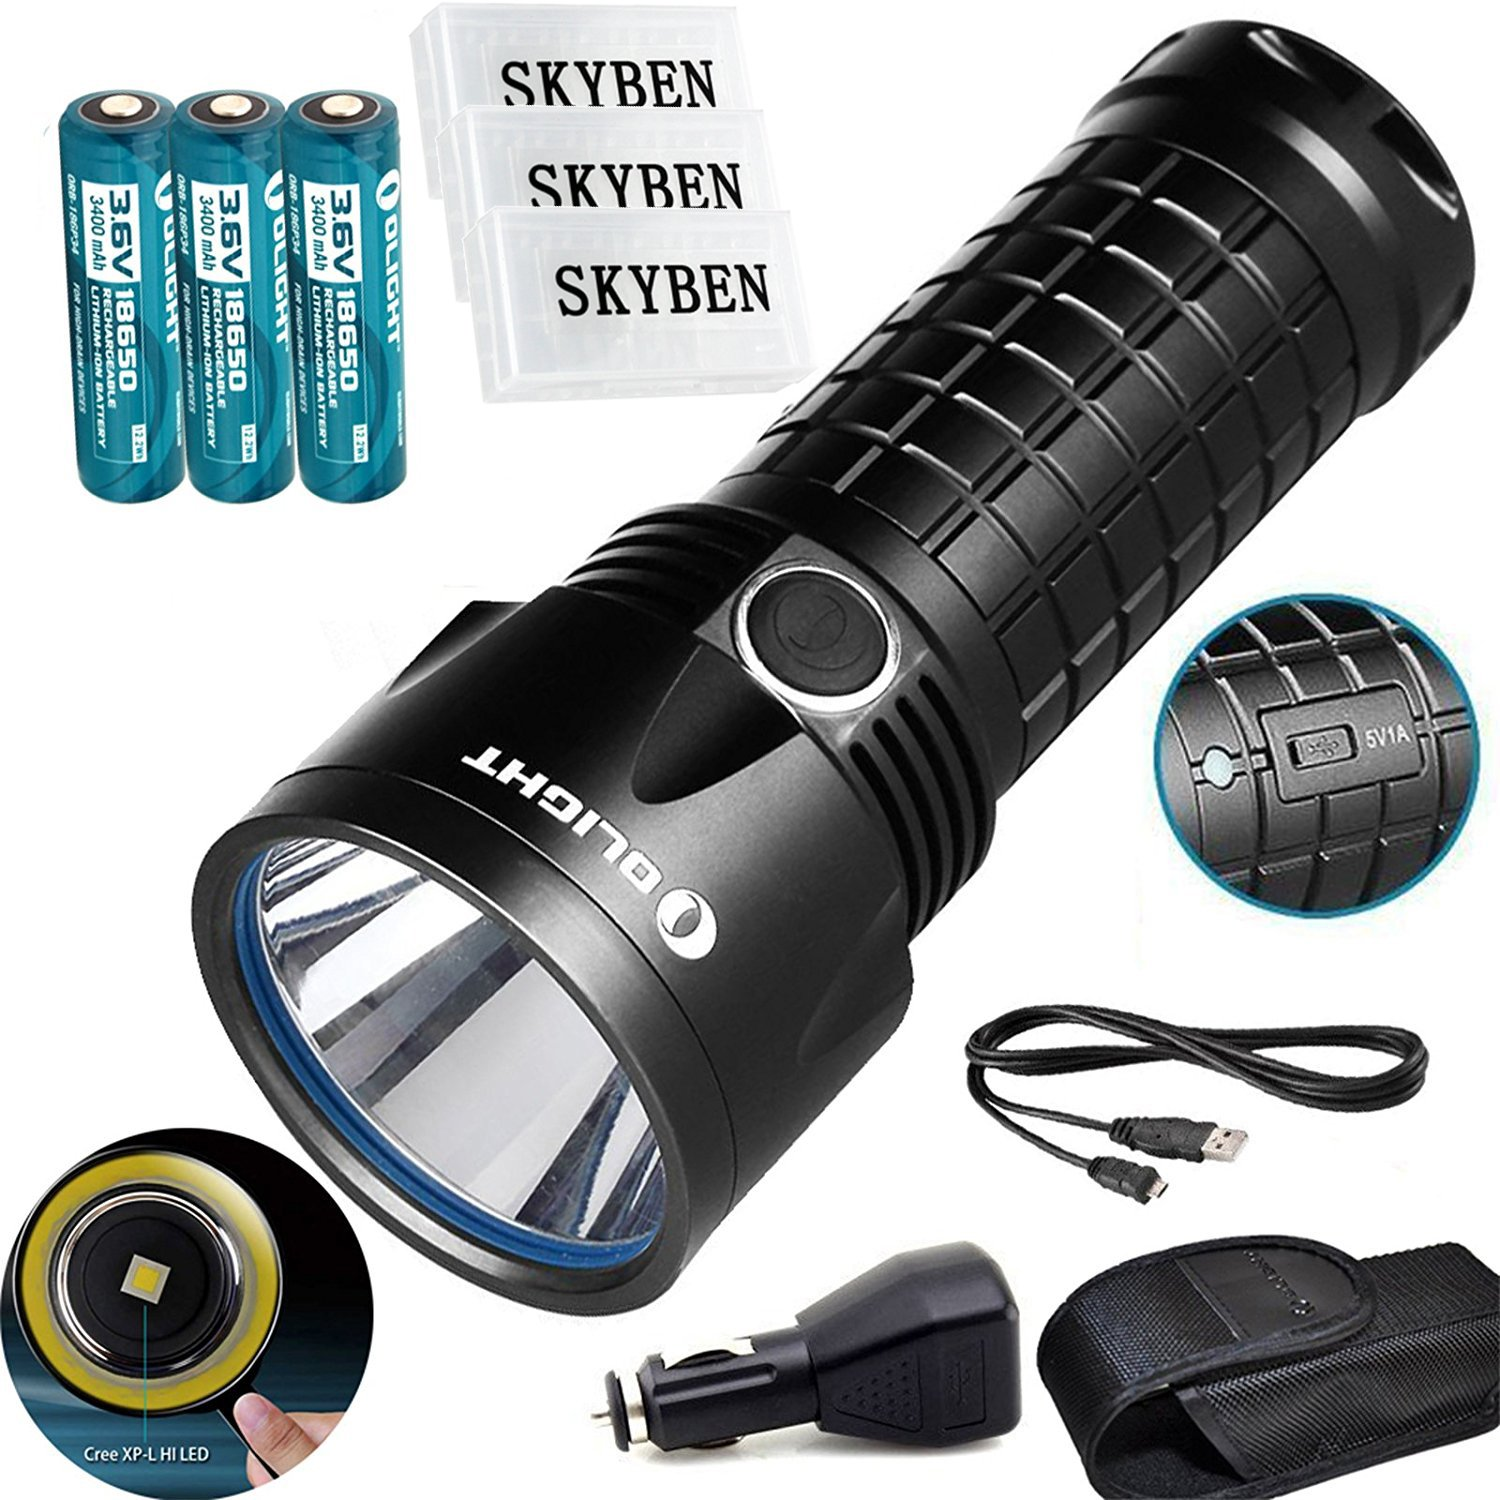 Bundle:Olight SR52UT Rechargeable Cree XP-L HI LED 1100 lumens 800 meters Waterproof flashlight+3*Olight 18650 3400 mAh Battery +3*Skyben 18650 Battery Case by Olight